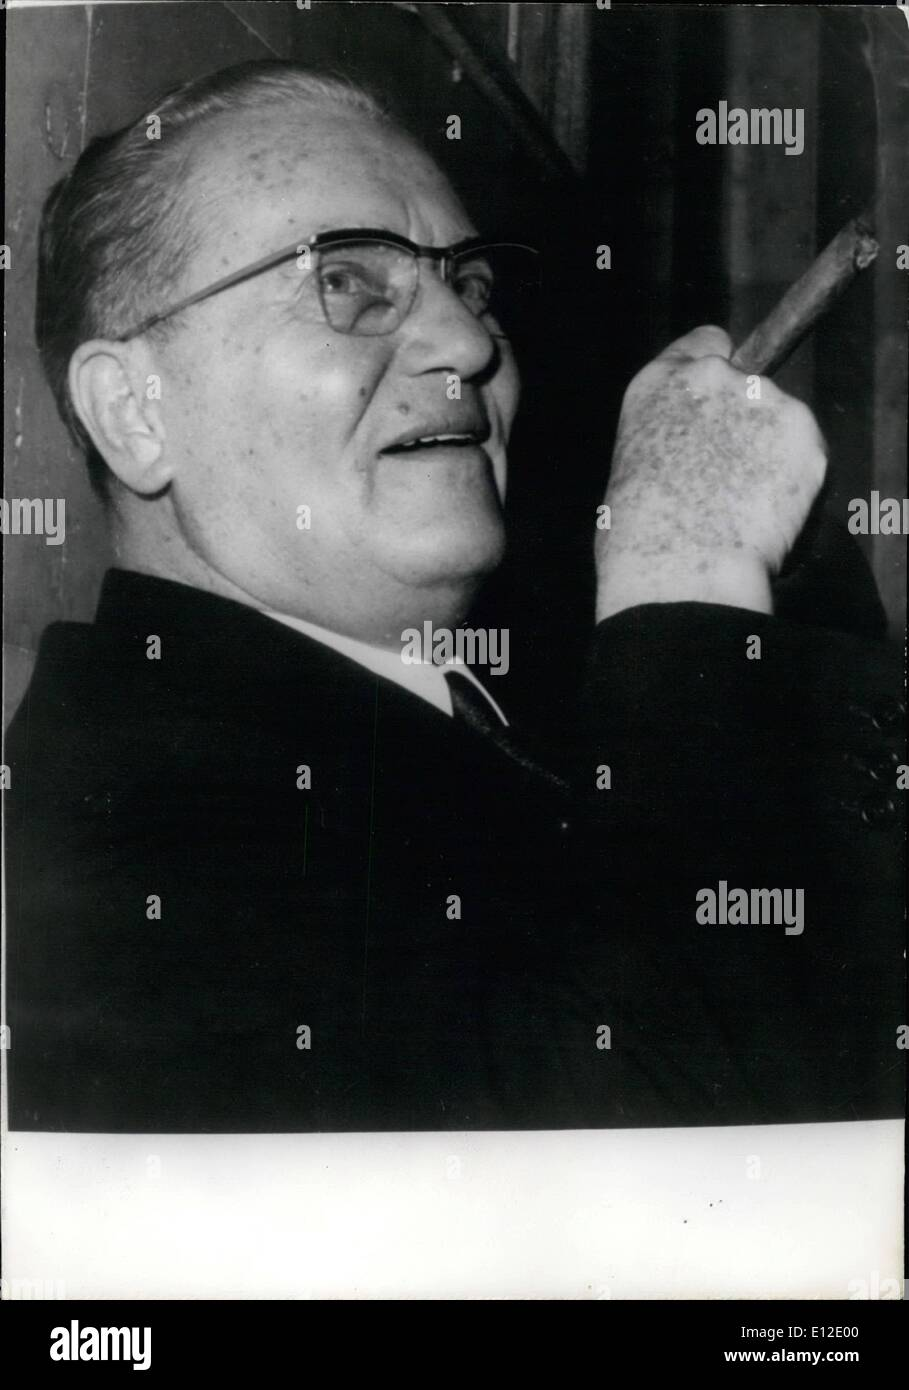 Dec. 15, 2011 - Tito celebrates 75th birthday. Marshal Tito is celebrating his 75th birthday tomorrow. OPS: One of the most recent pictures of Marshal Tito smoking a cigar. May 24th/67 - Stock Image